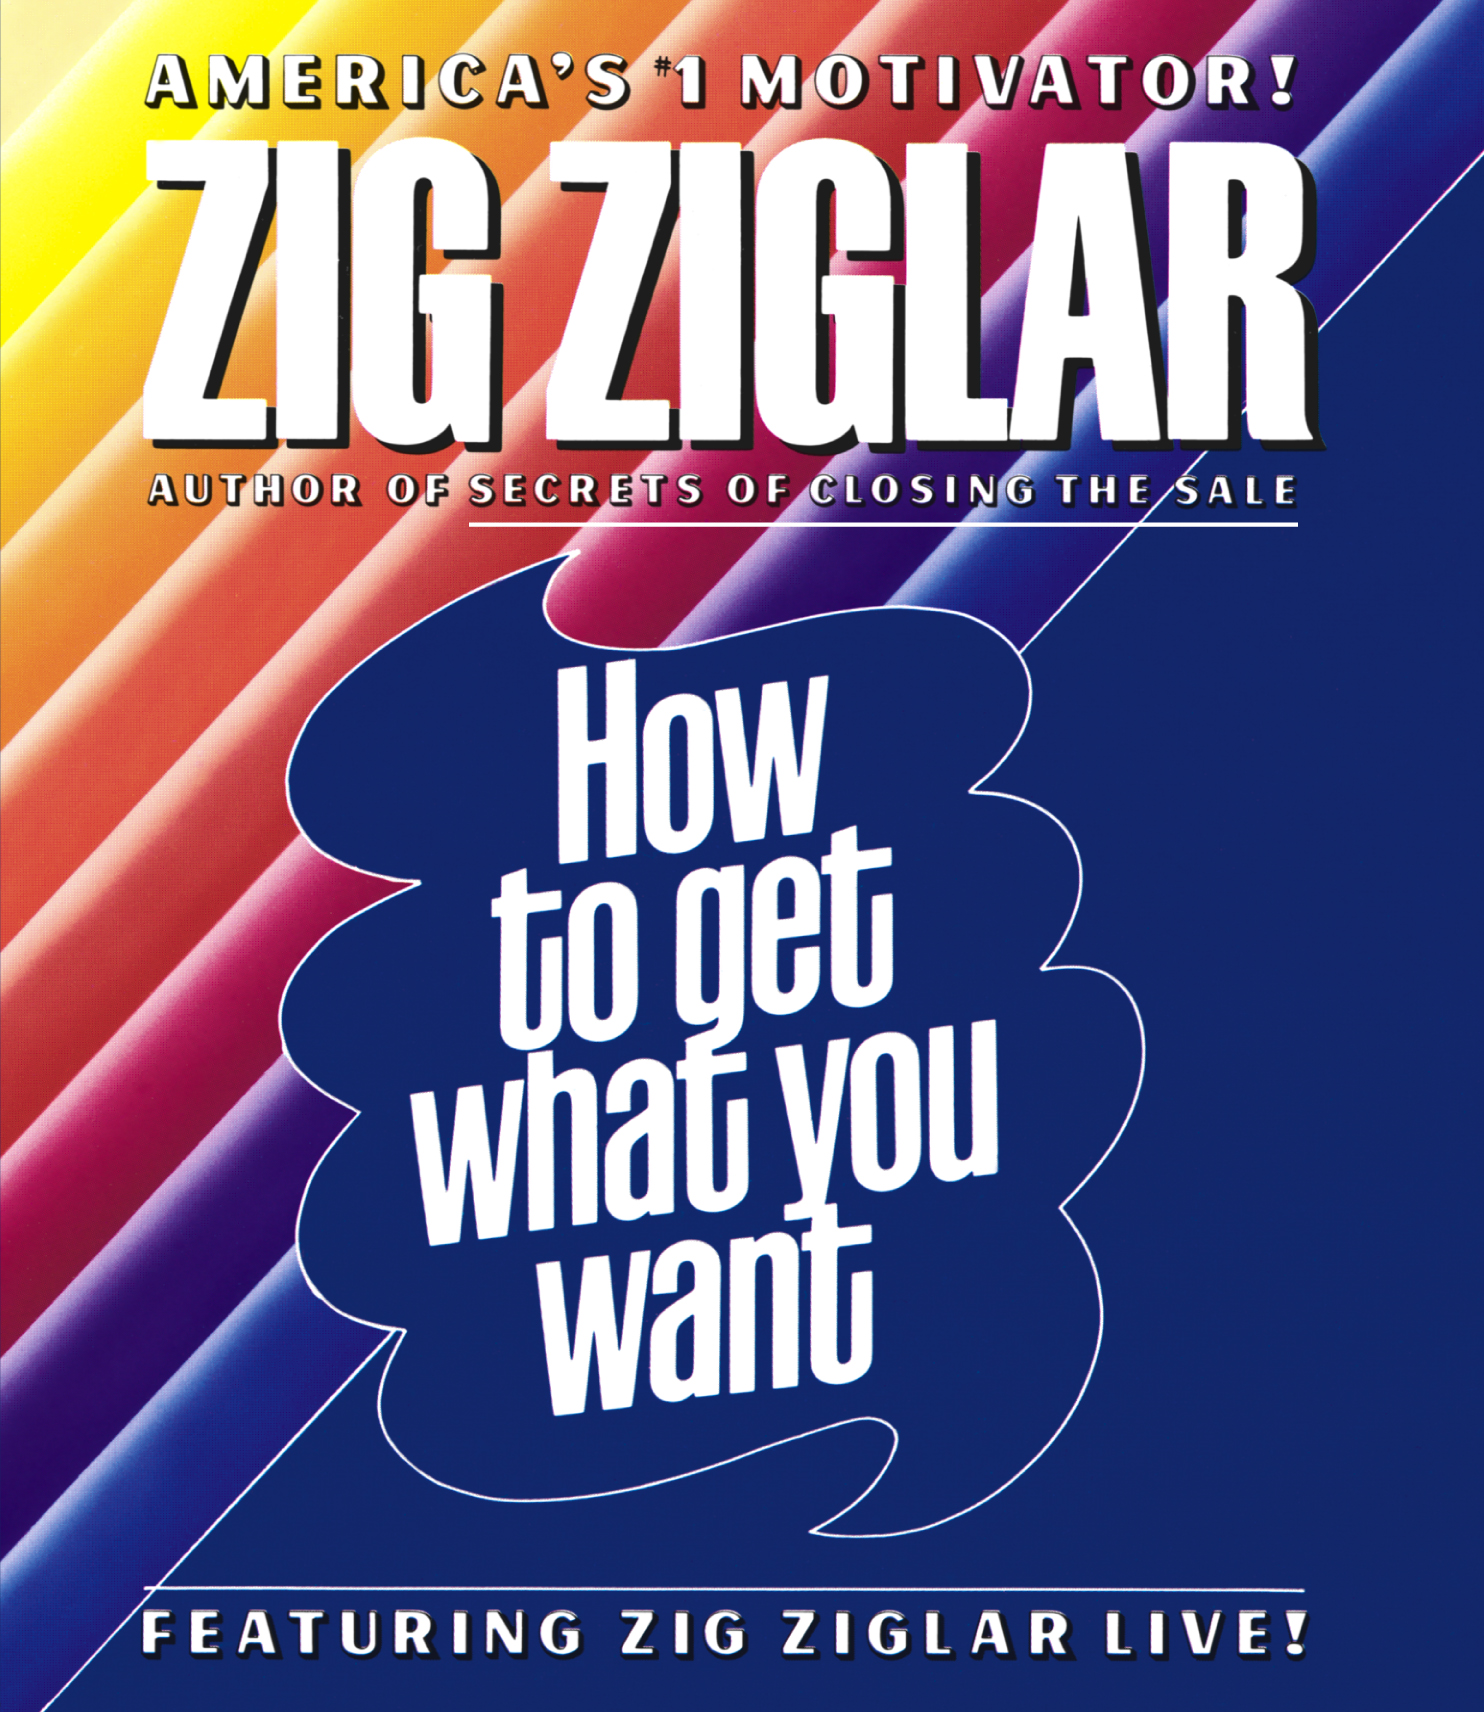 How to get what you want 74